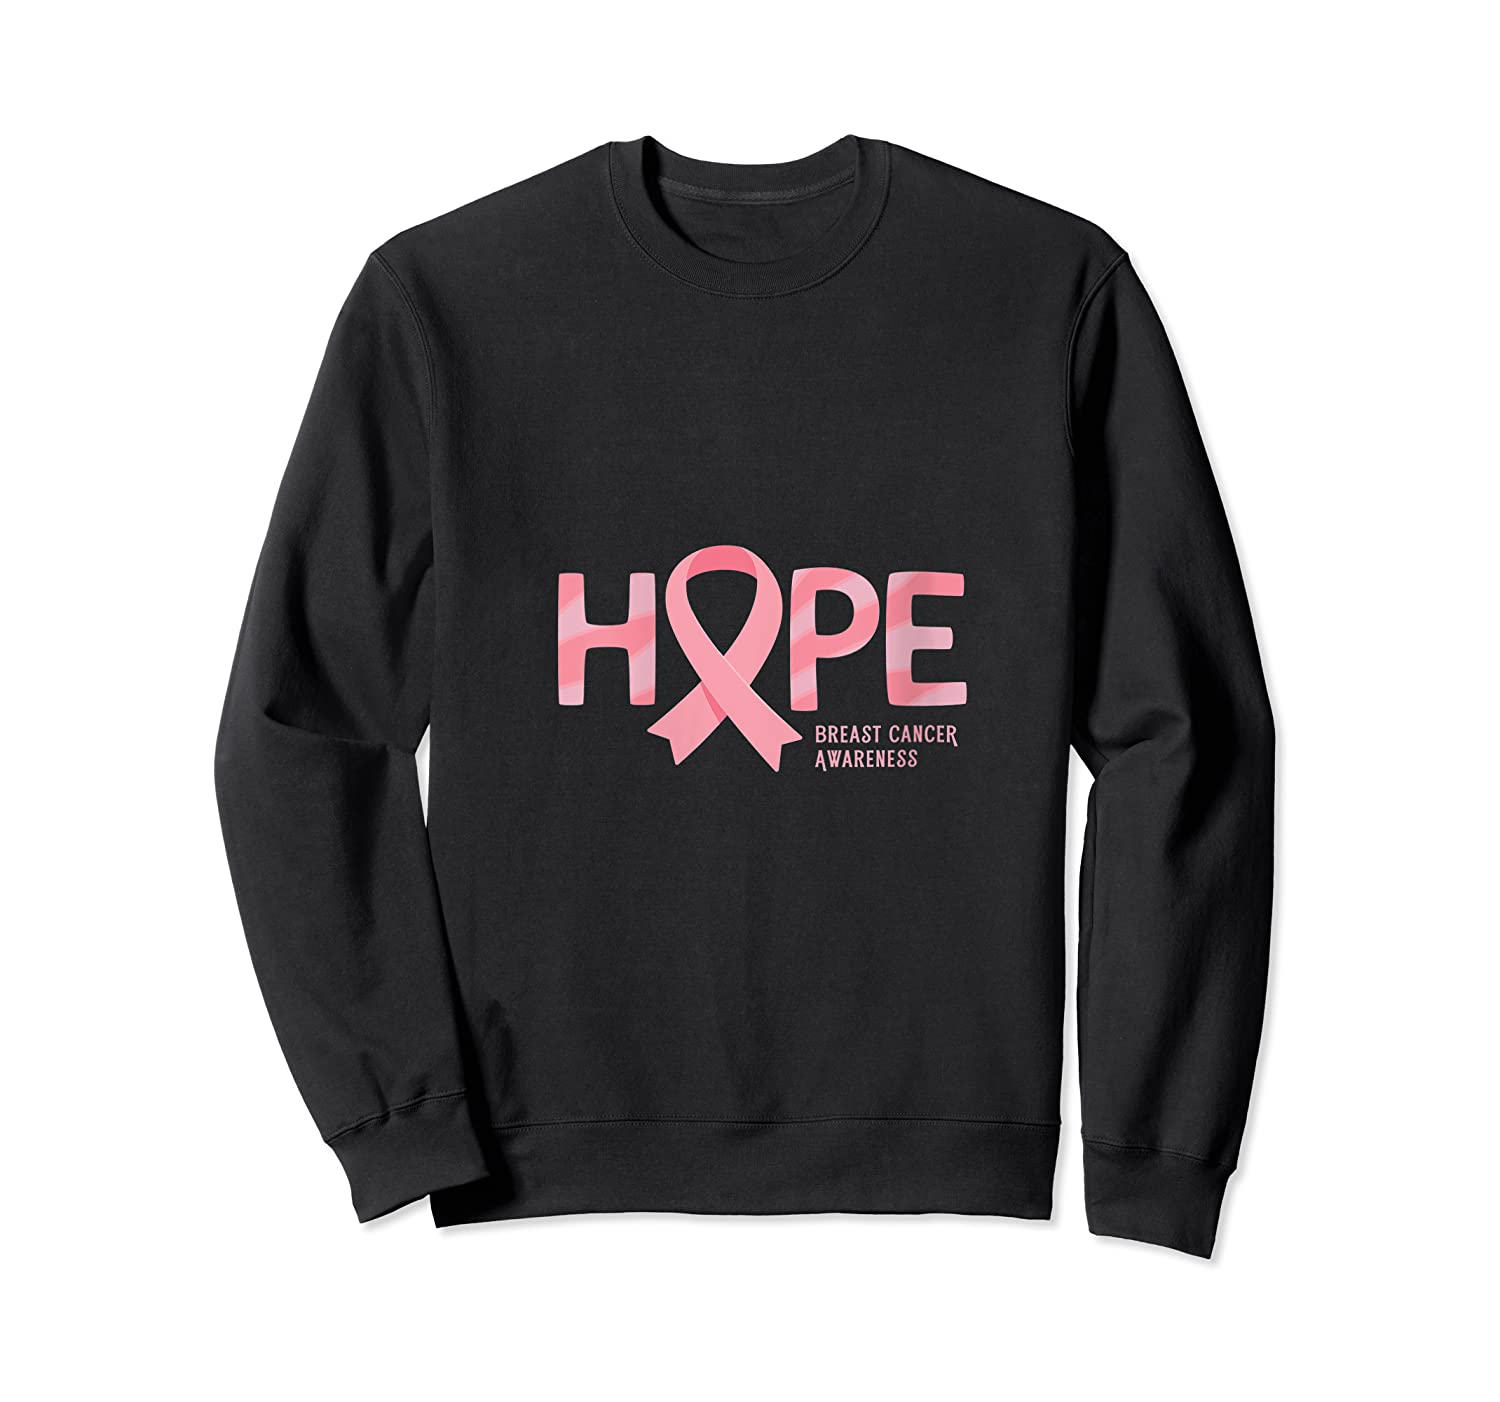 Have Hope Breast Cancer Awareness Month Support Team T Shirt Crewneck Sweater